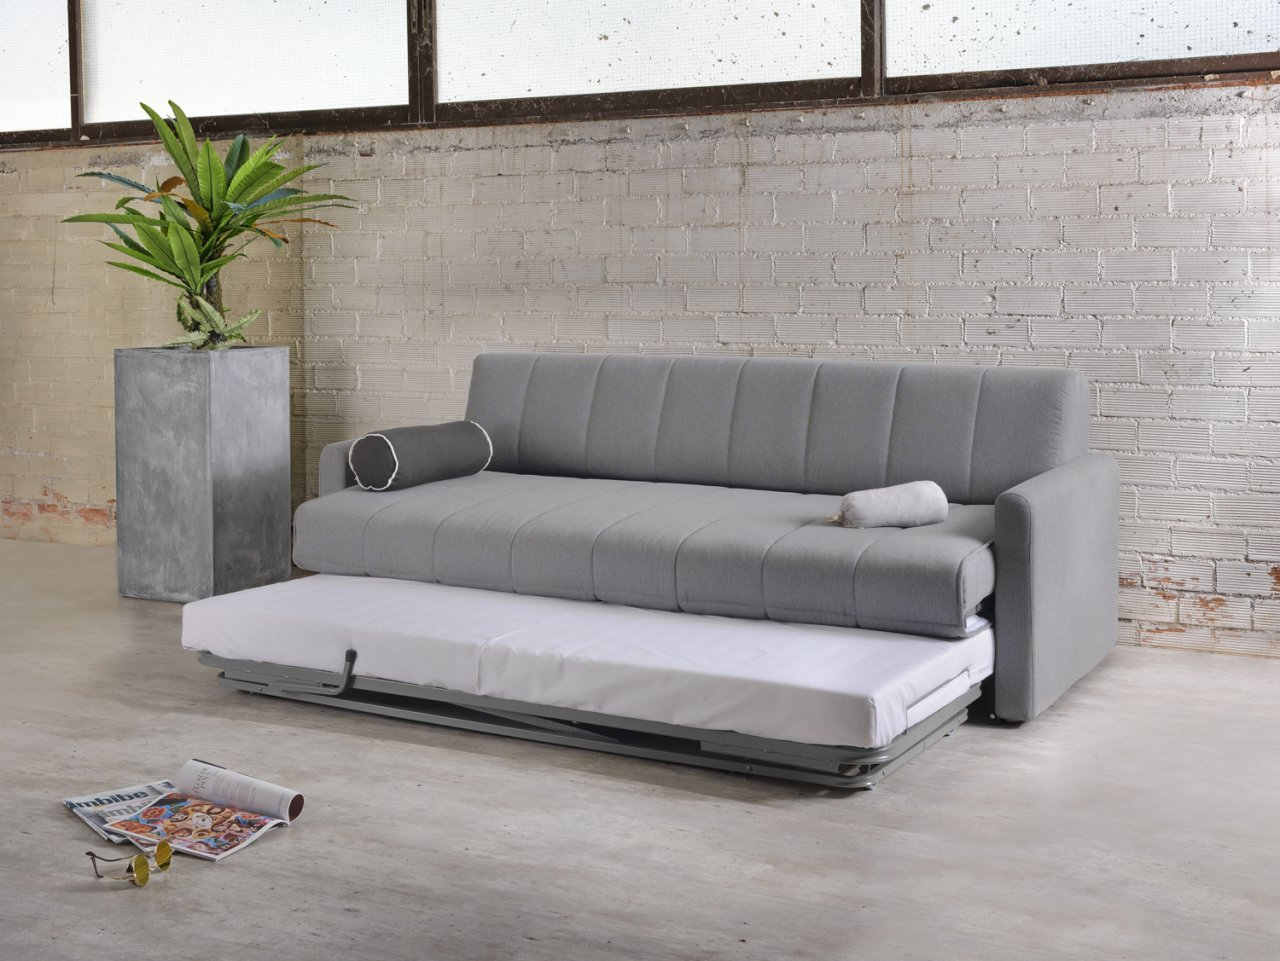 Four Seater Sofa Bed Star Two Single Or One Double Bed